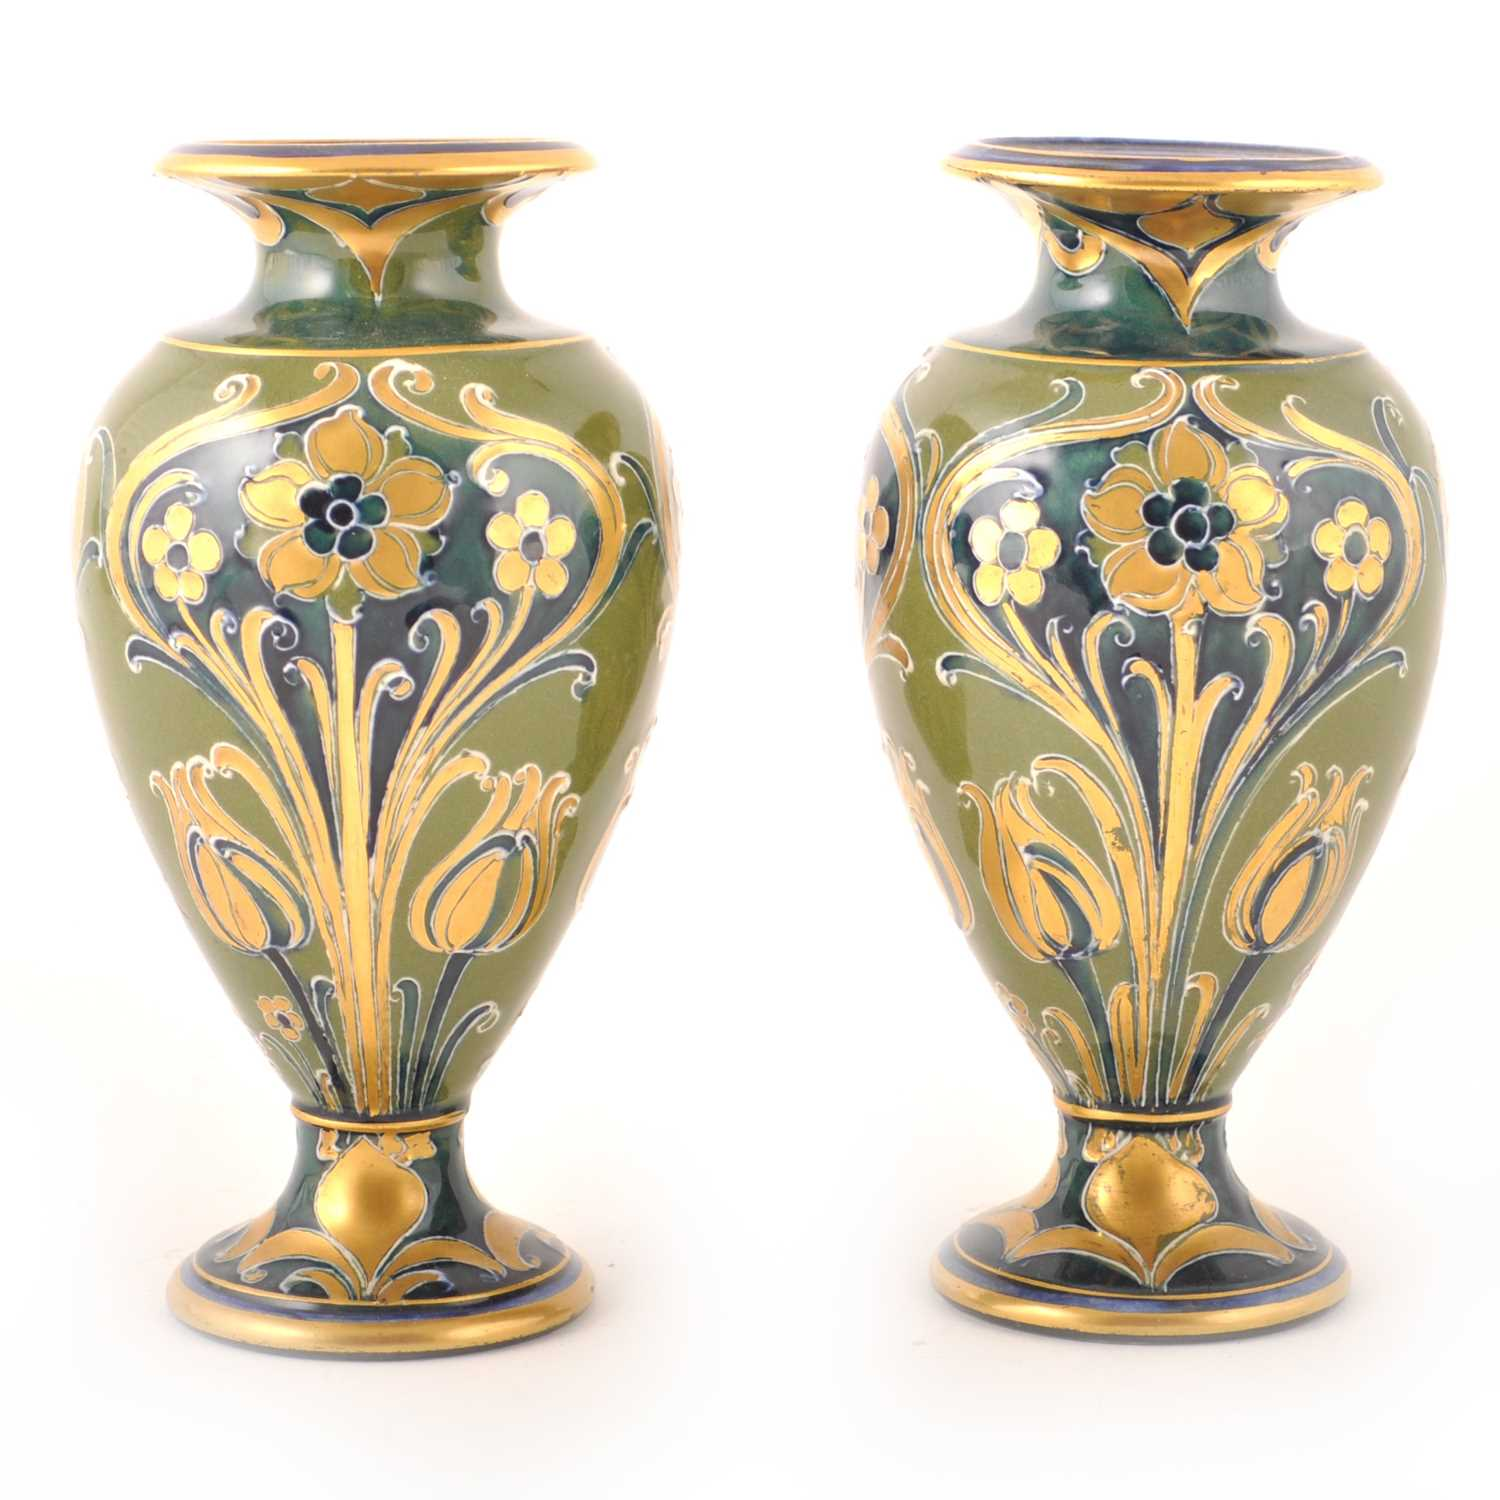 Lot 544-William Moorcroft for James Macintyre, a pair of 'Green and Gold' Florian Ware vases